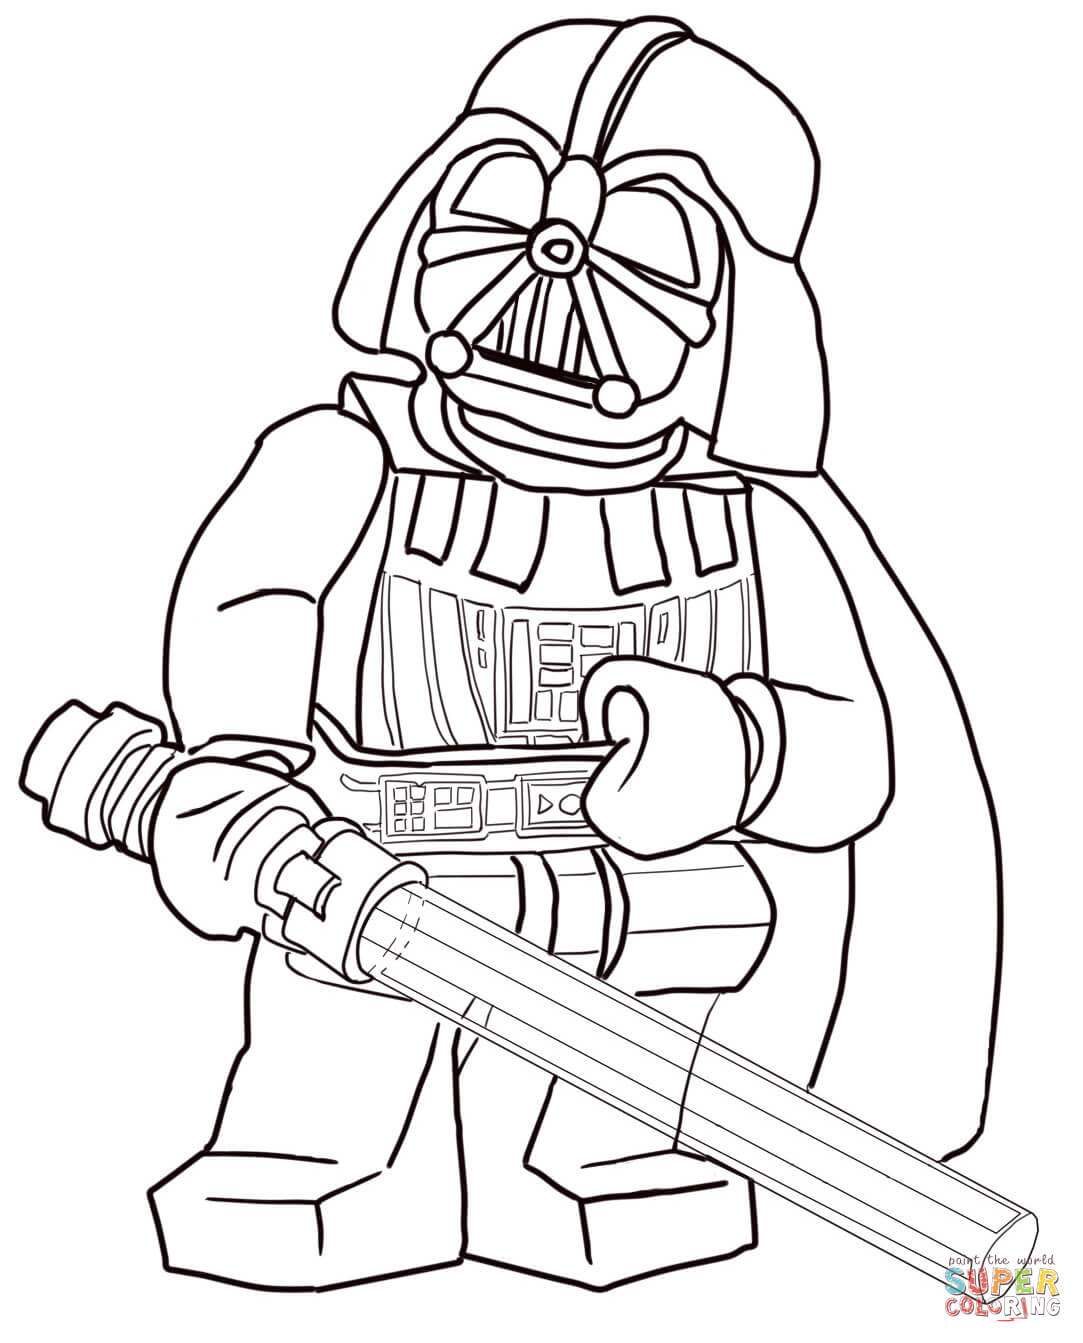 Chewbacca Lego Star Wars Coloring Pages Coloring And Drawing